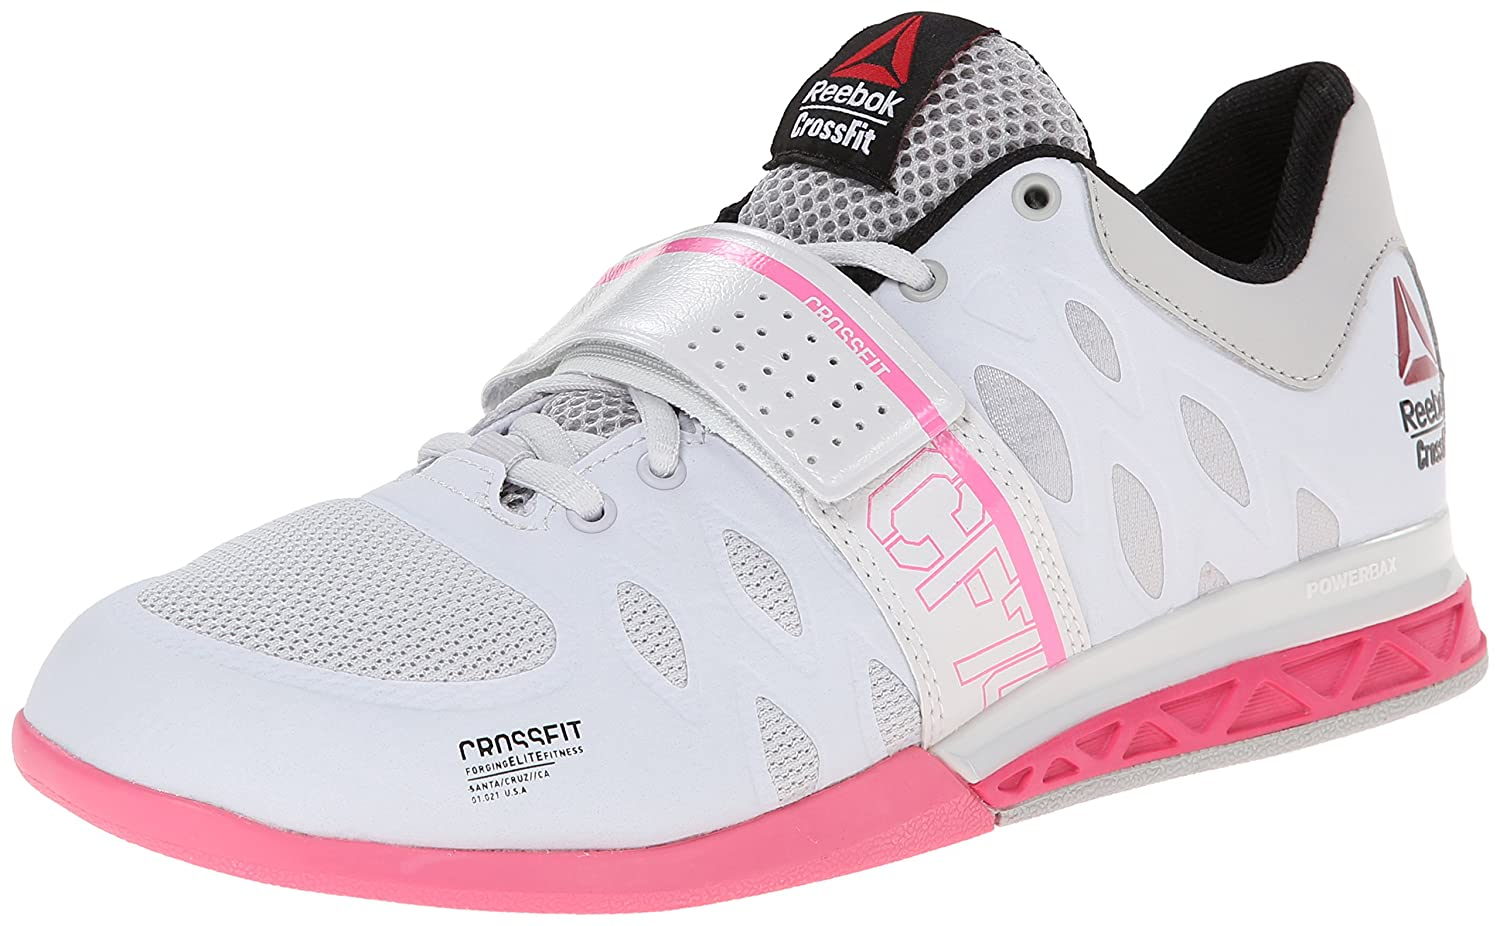 Reebok Women's Lifter 2.0 Weight Lifting Shoe